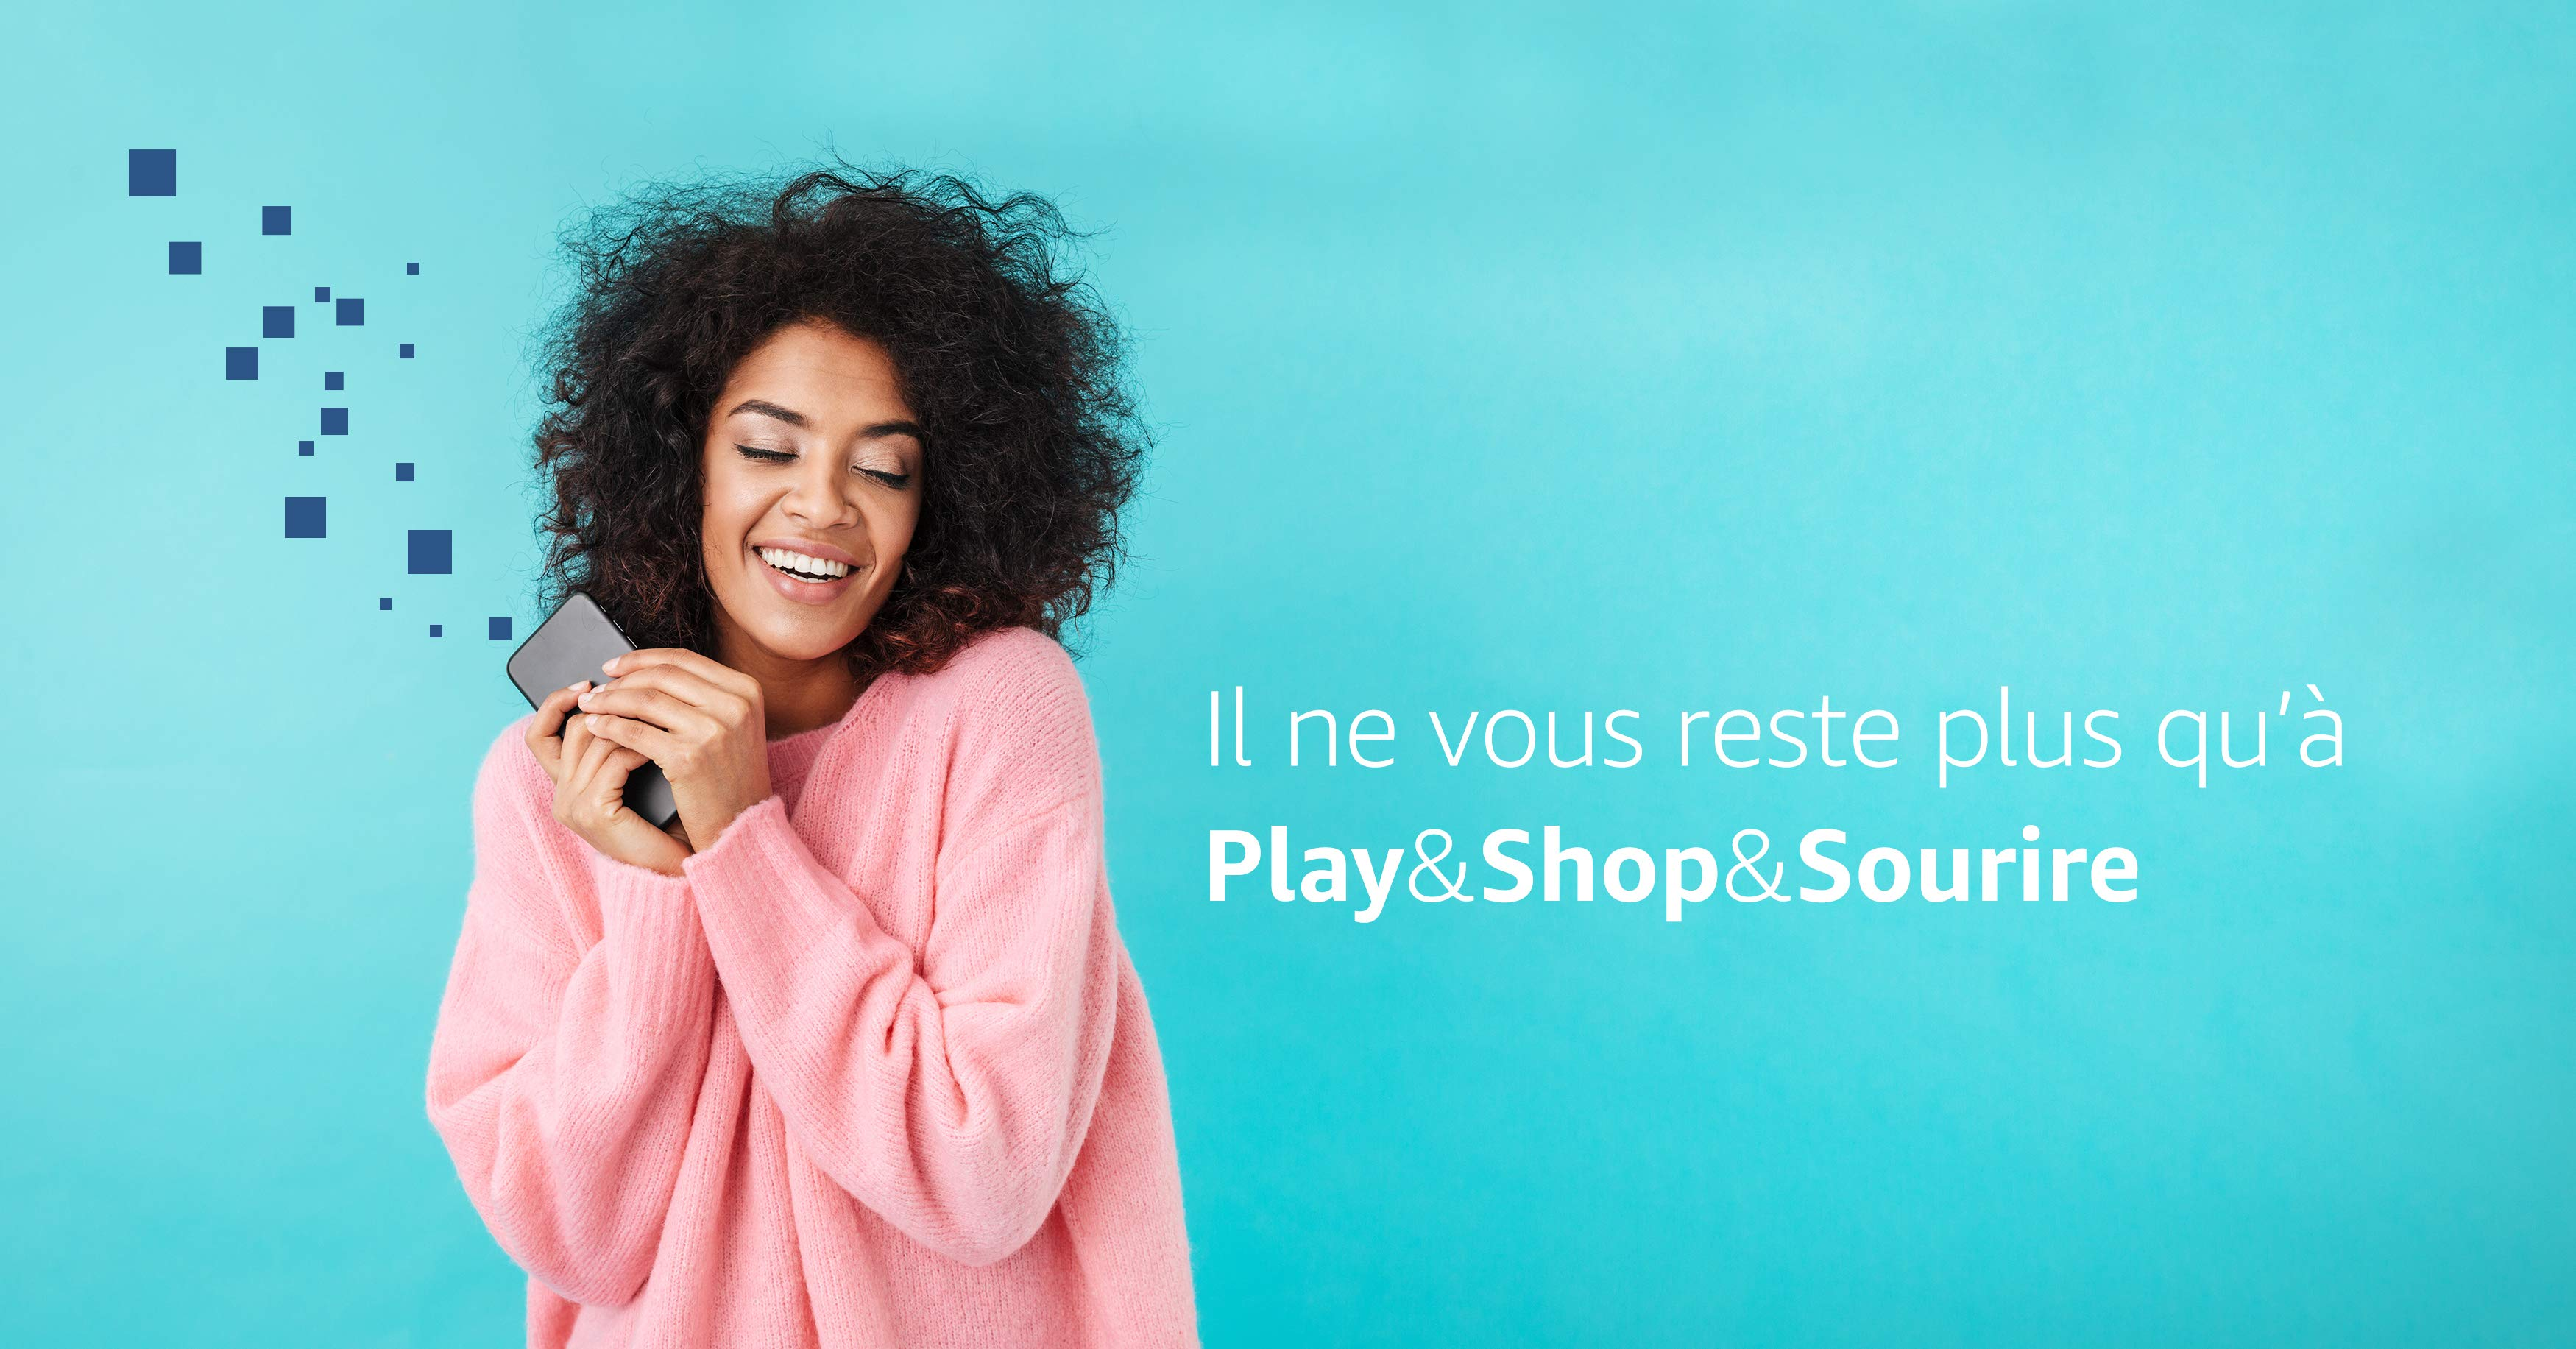 Play&Shop&Smile